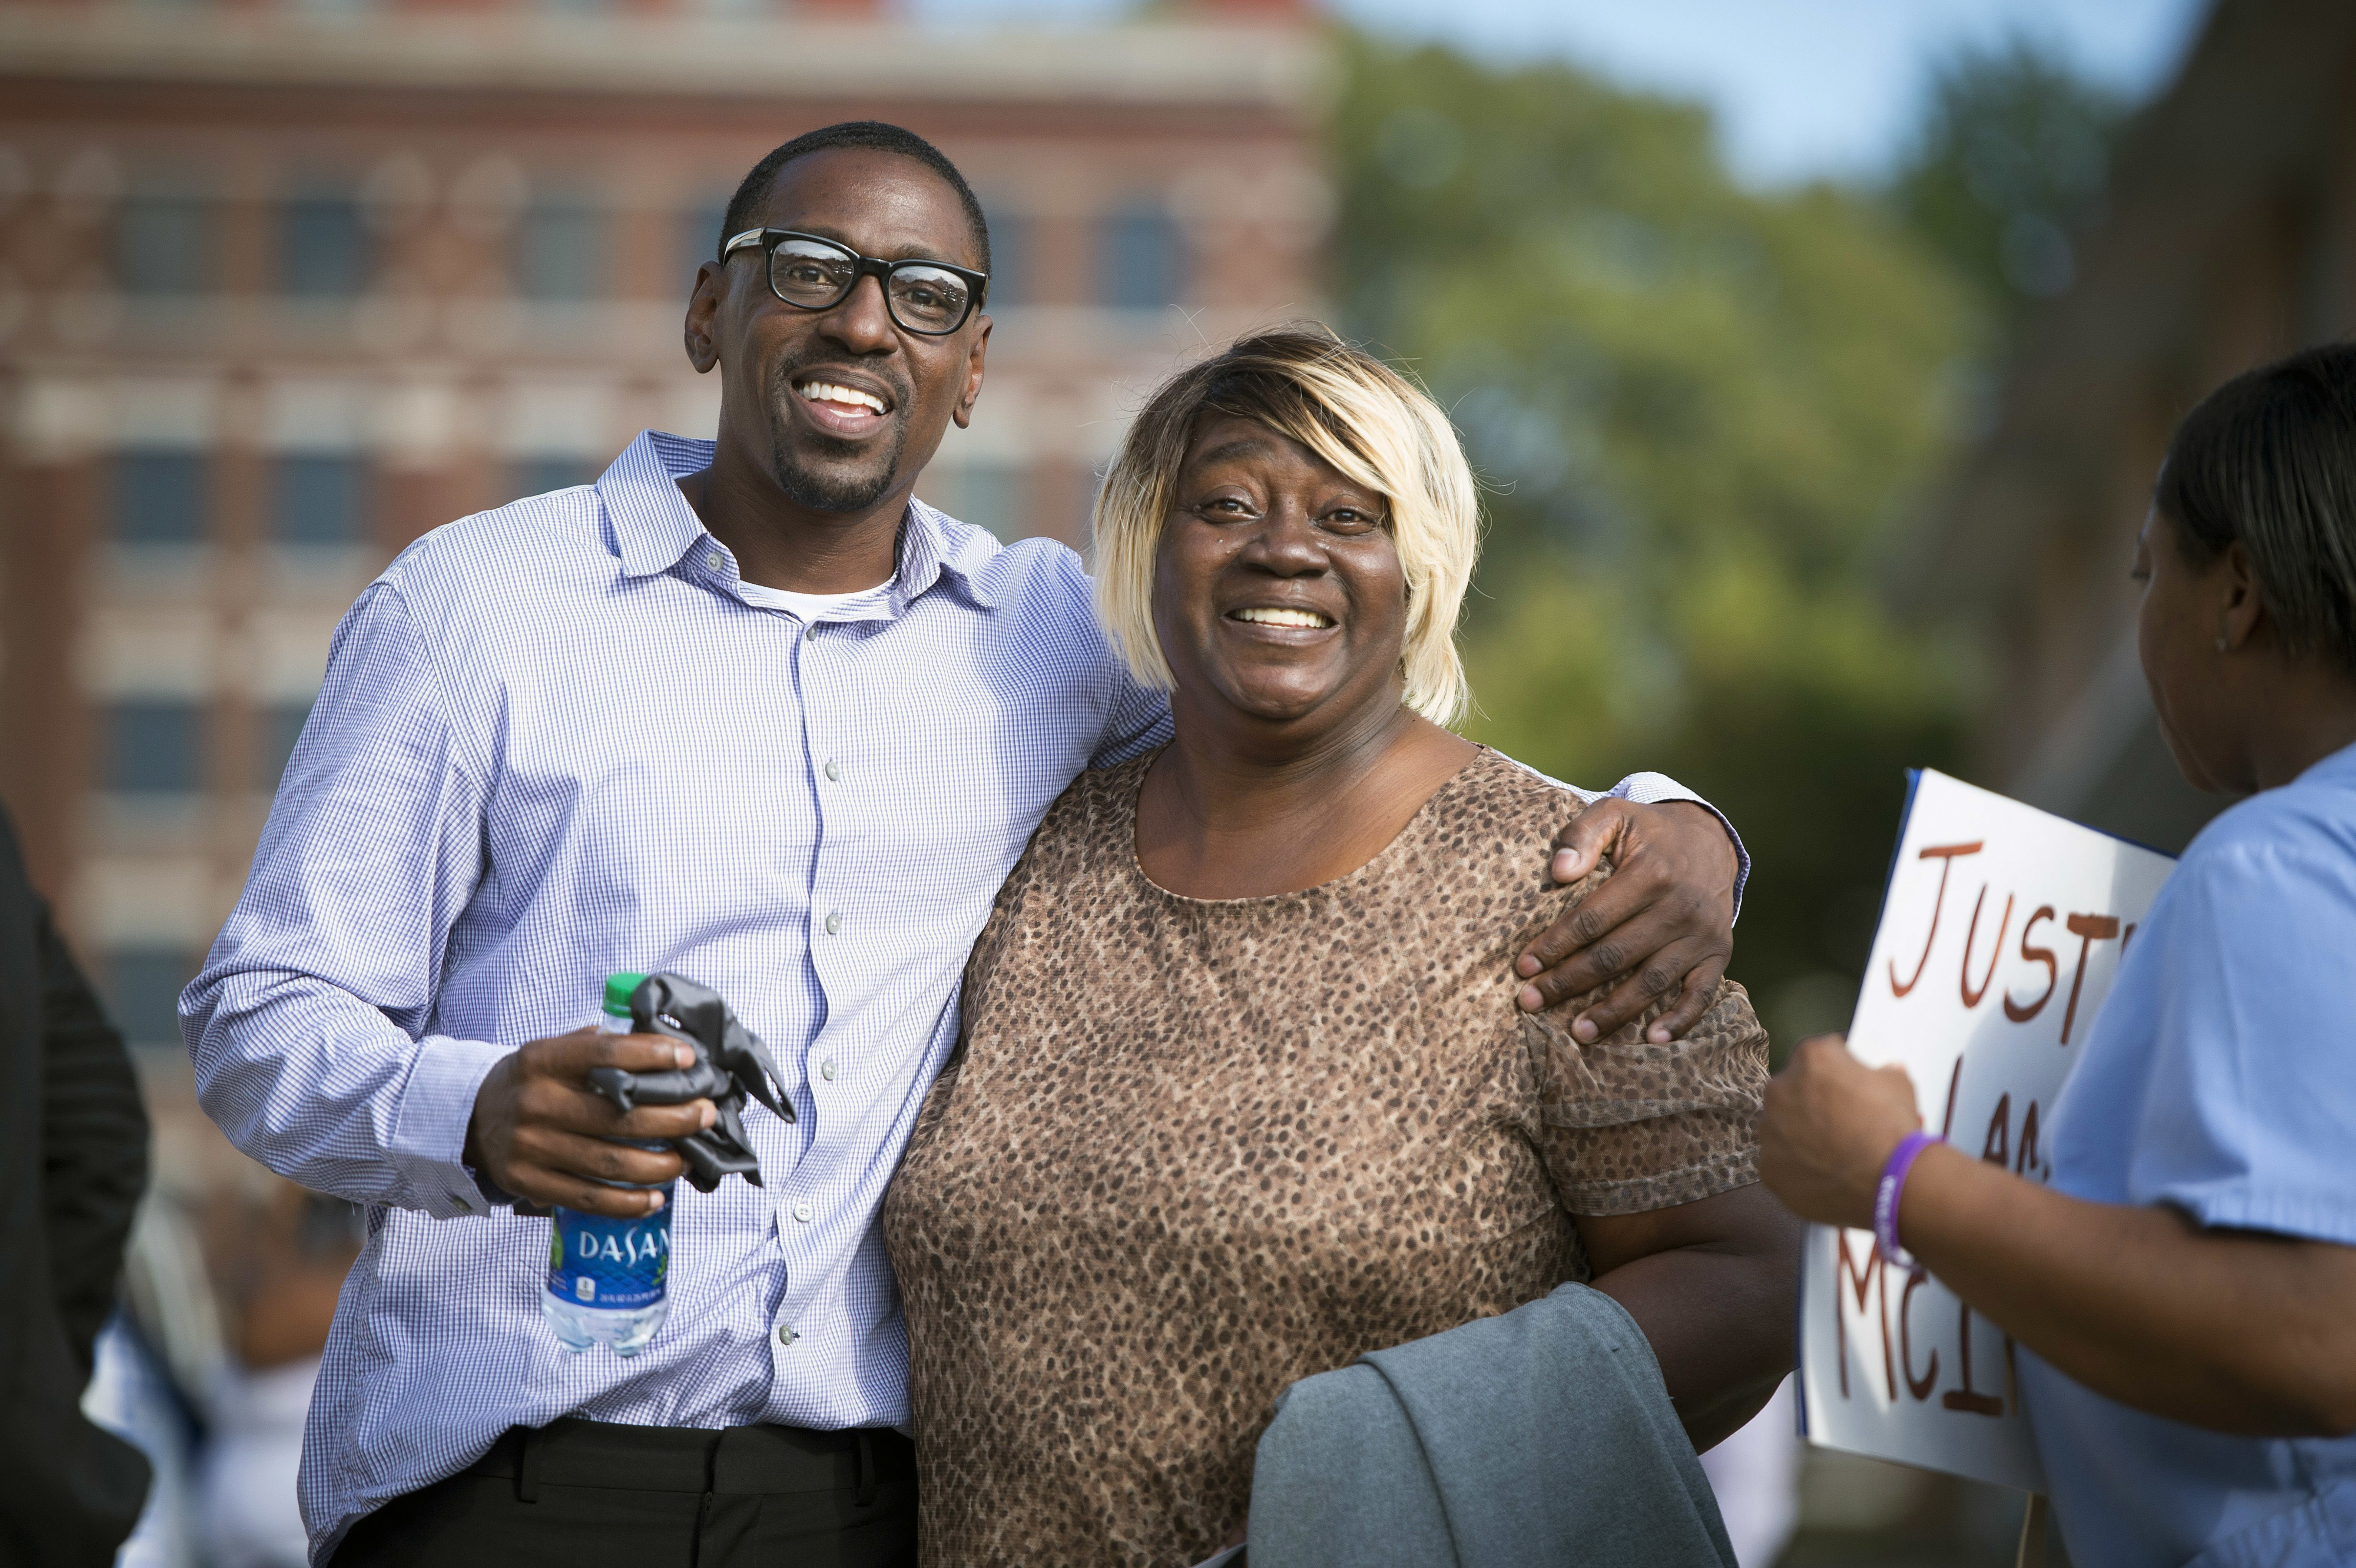 Kansas fights claim of man wrongly imprisoned for 23 years